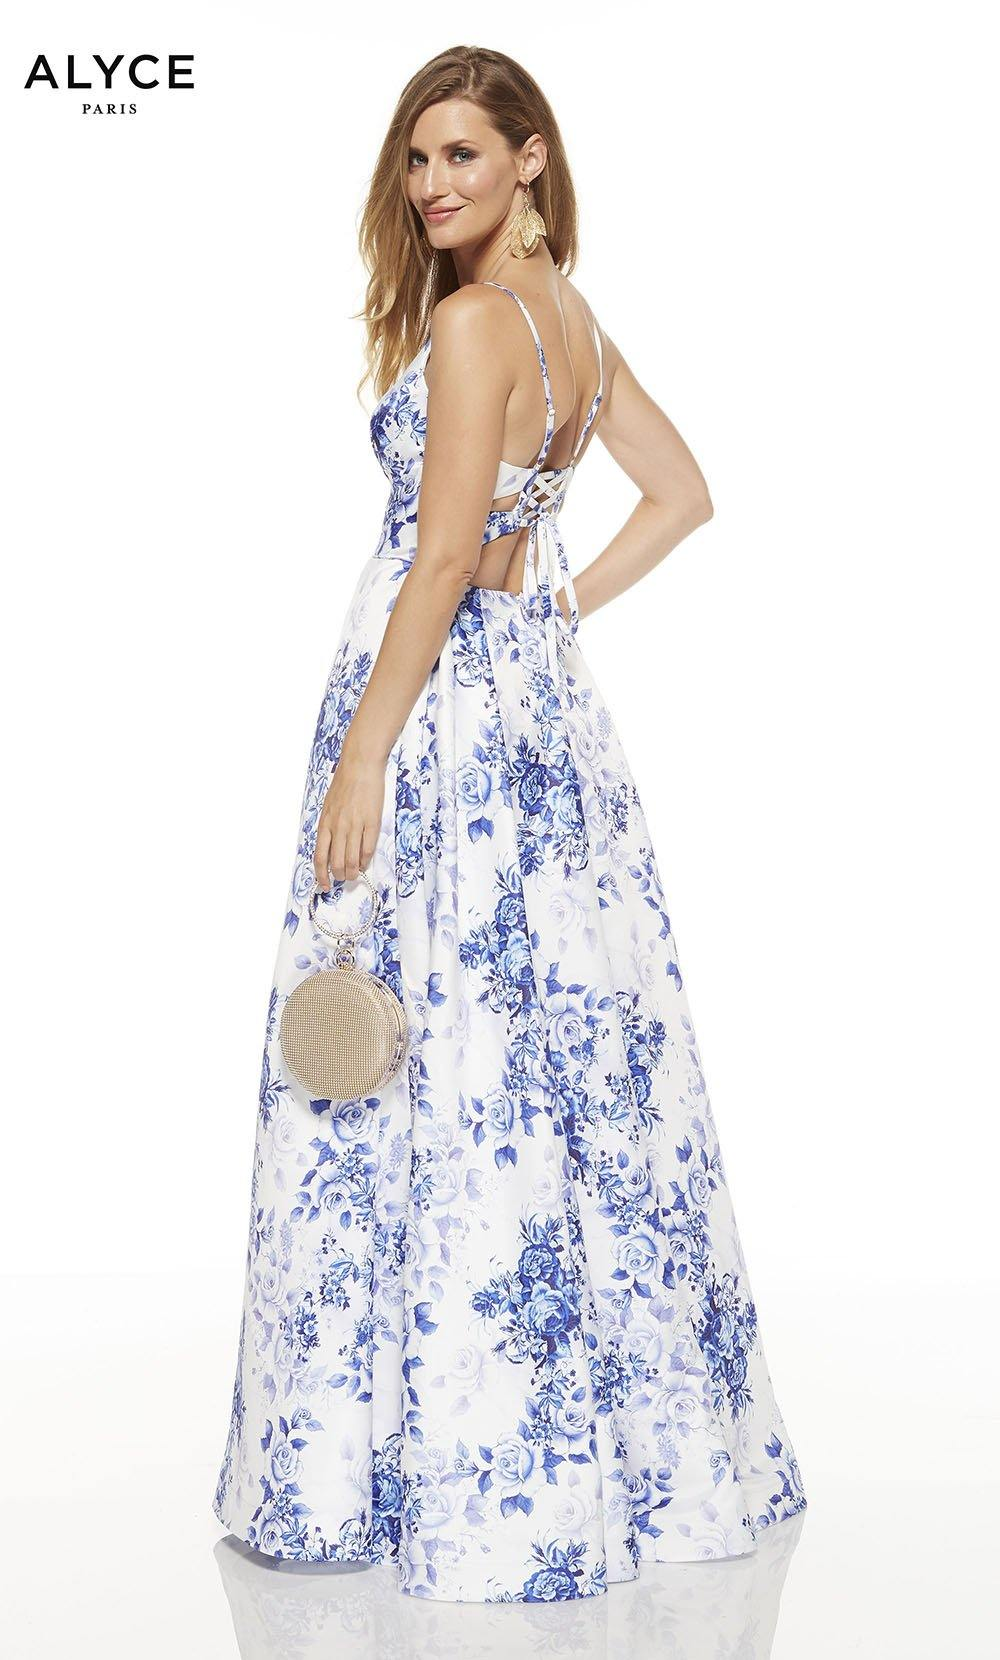 Diamond White-Royal prom dress with floral print and a strappy back